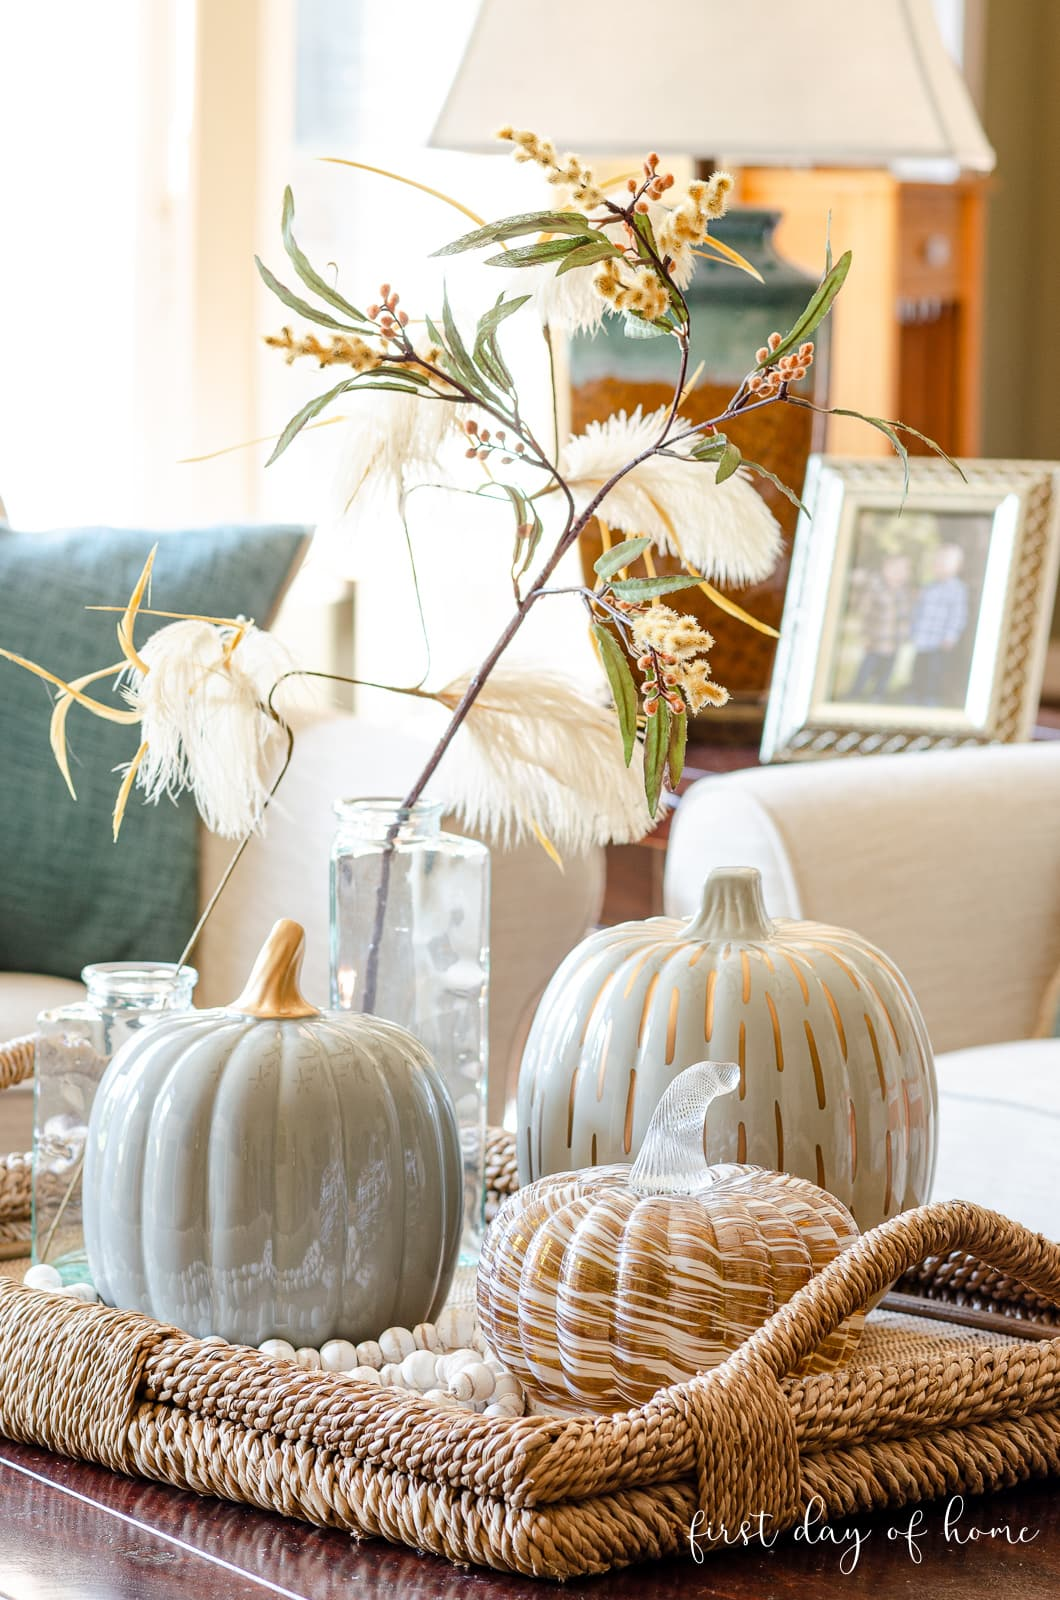 Fall home tour of living room with fall coffee table decor using ceramic pumpkins and faux florals in wicker tray